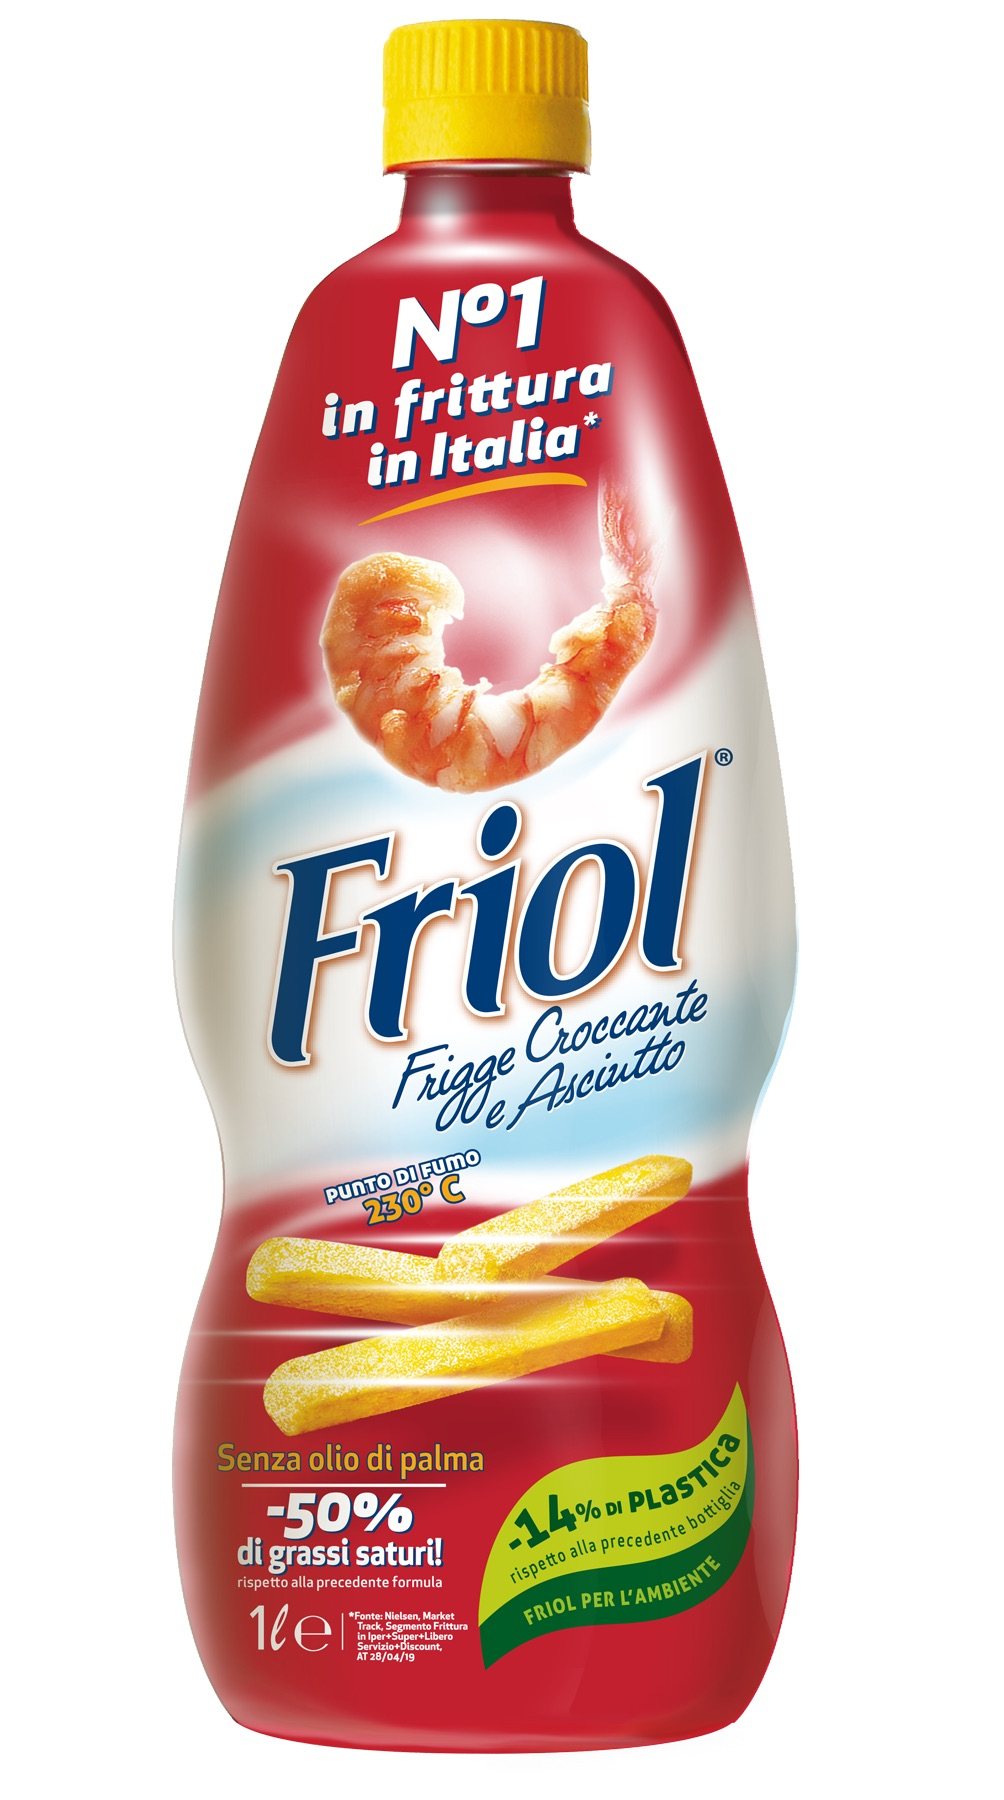 Un nuovo packaging per Friol